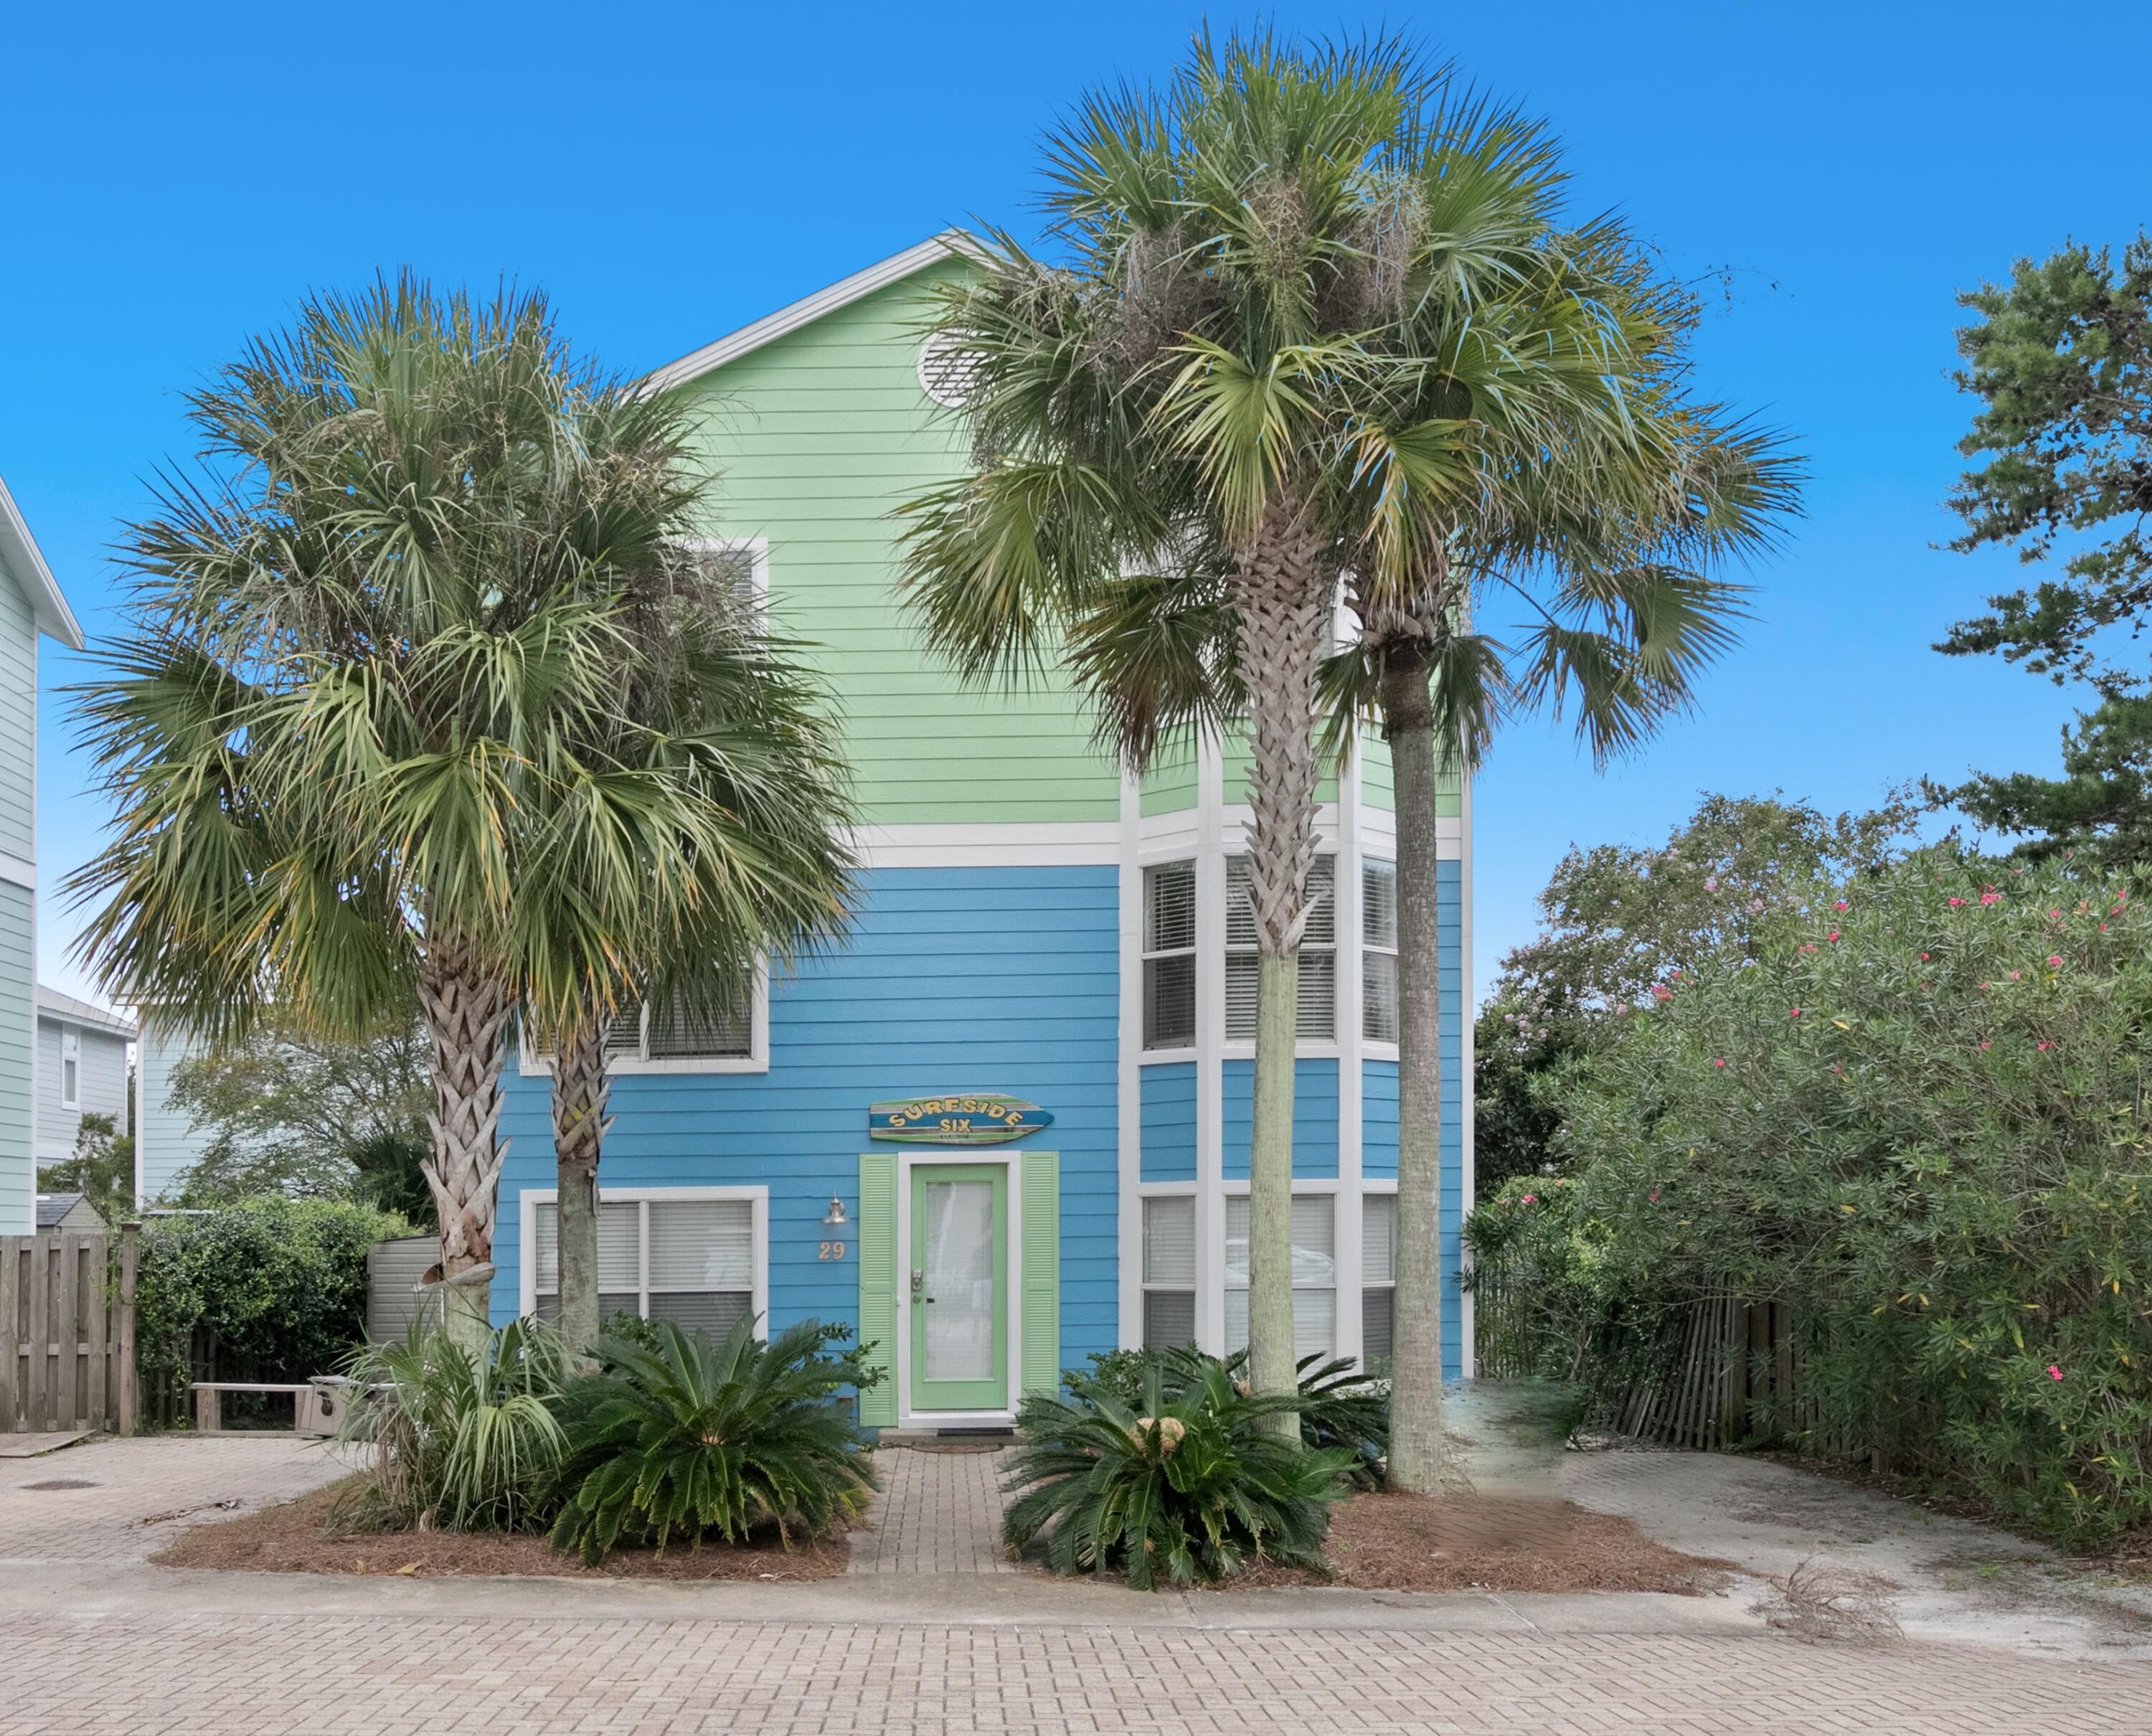 Fabulous LOCATION SOUTH OF 30A. This beautifully well maintained home is a short walking distance to the beach just off 30-A in Blue Mountain Beach. The location is a quiet street with no thru traffic that dead ends to the forest. This 4 bedroom home has en-suites for each bedroom and a half bathroom downstairs. It is fully furnished and ready to move your family in. It has great rental potential with the ability to do short term rentals in this neighborhood. Enjoy easy beach access, along with the community pool/fitness center access at The Villages of Blue Mountain Beach across 30-A. This is a great investment opportunity or new home for your 30a lifestyle. If your looking for a laid back neighborhood with kind people and a peaceful lifestyle, come see 'Surfside Six'! It is a true gem.